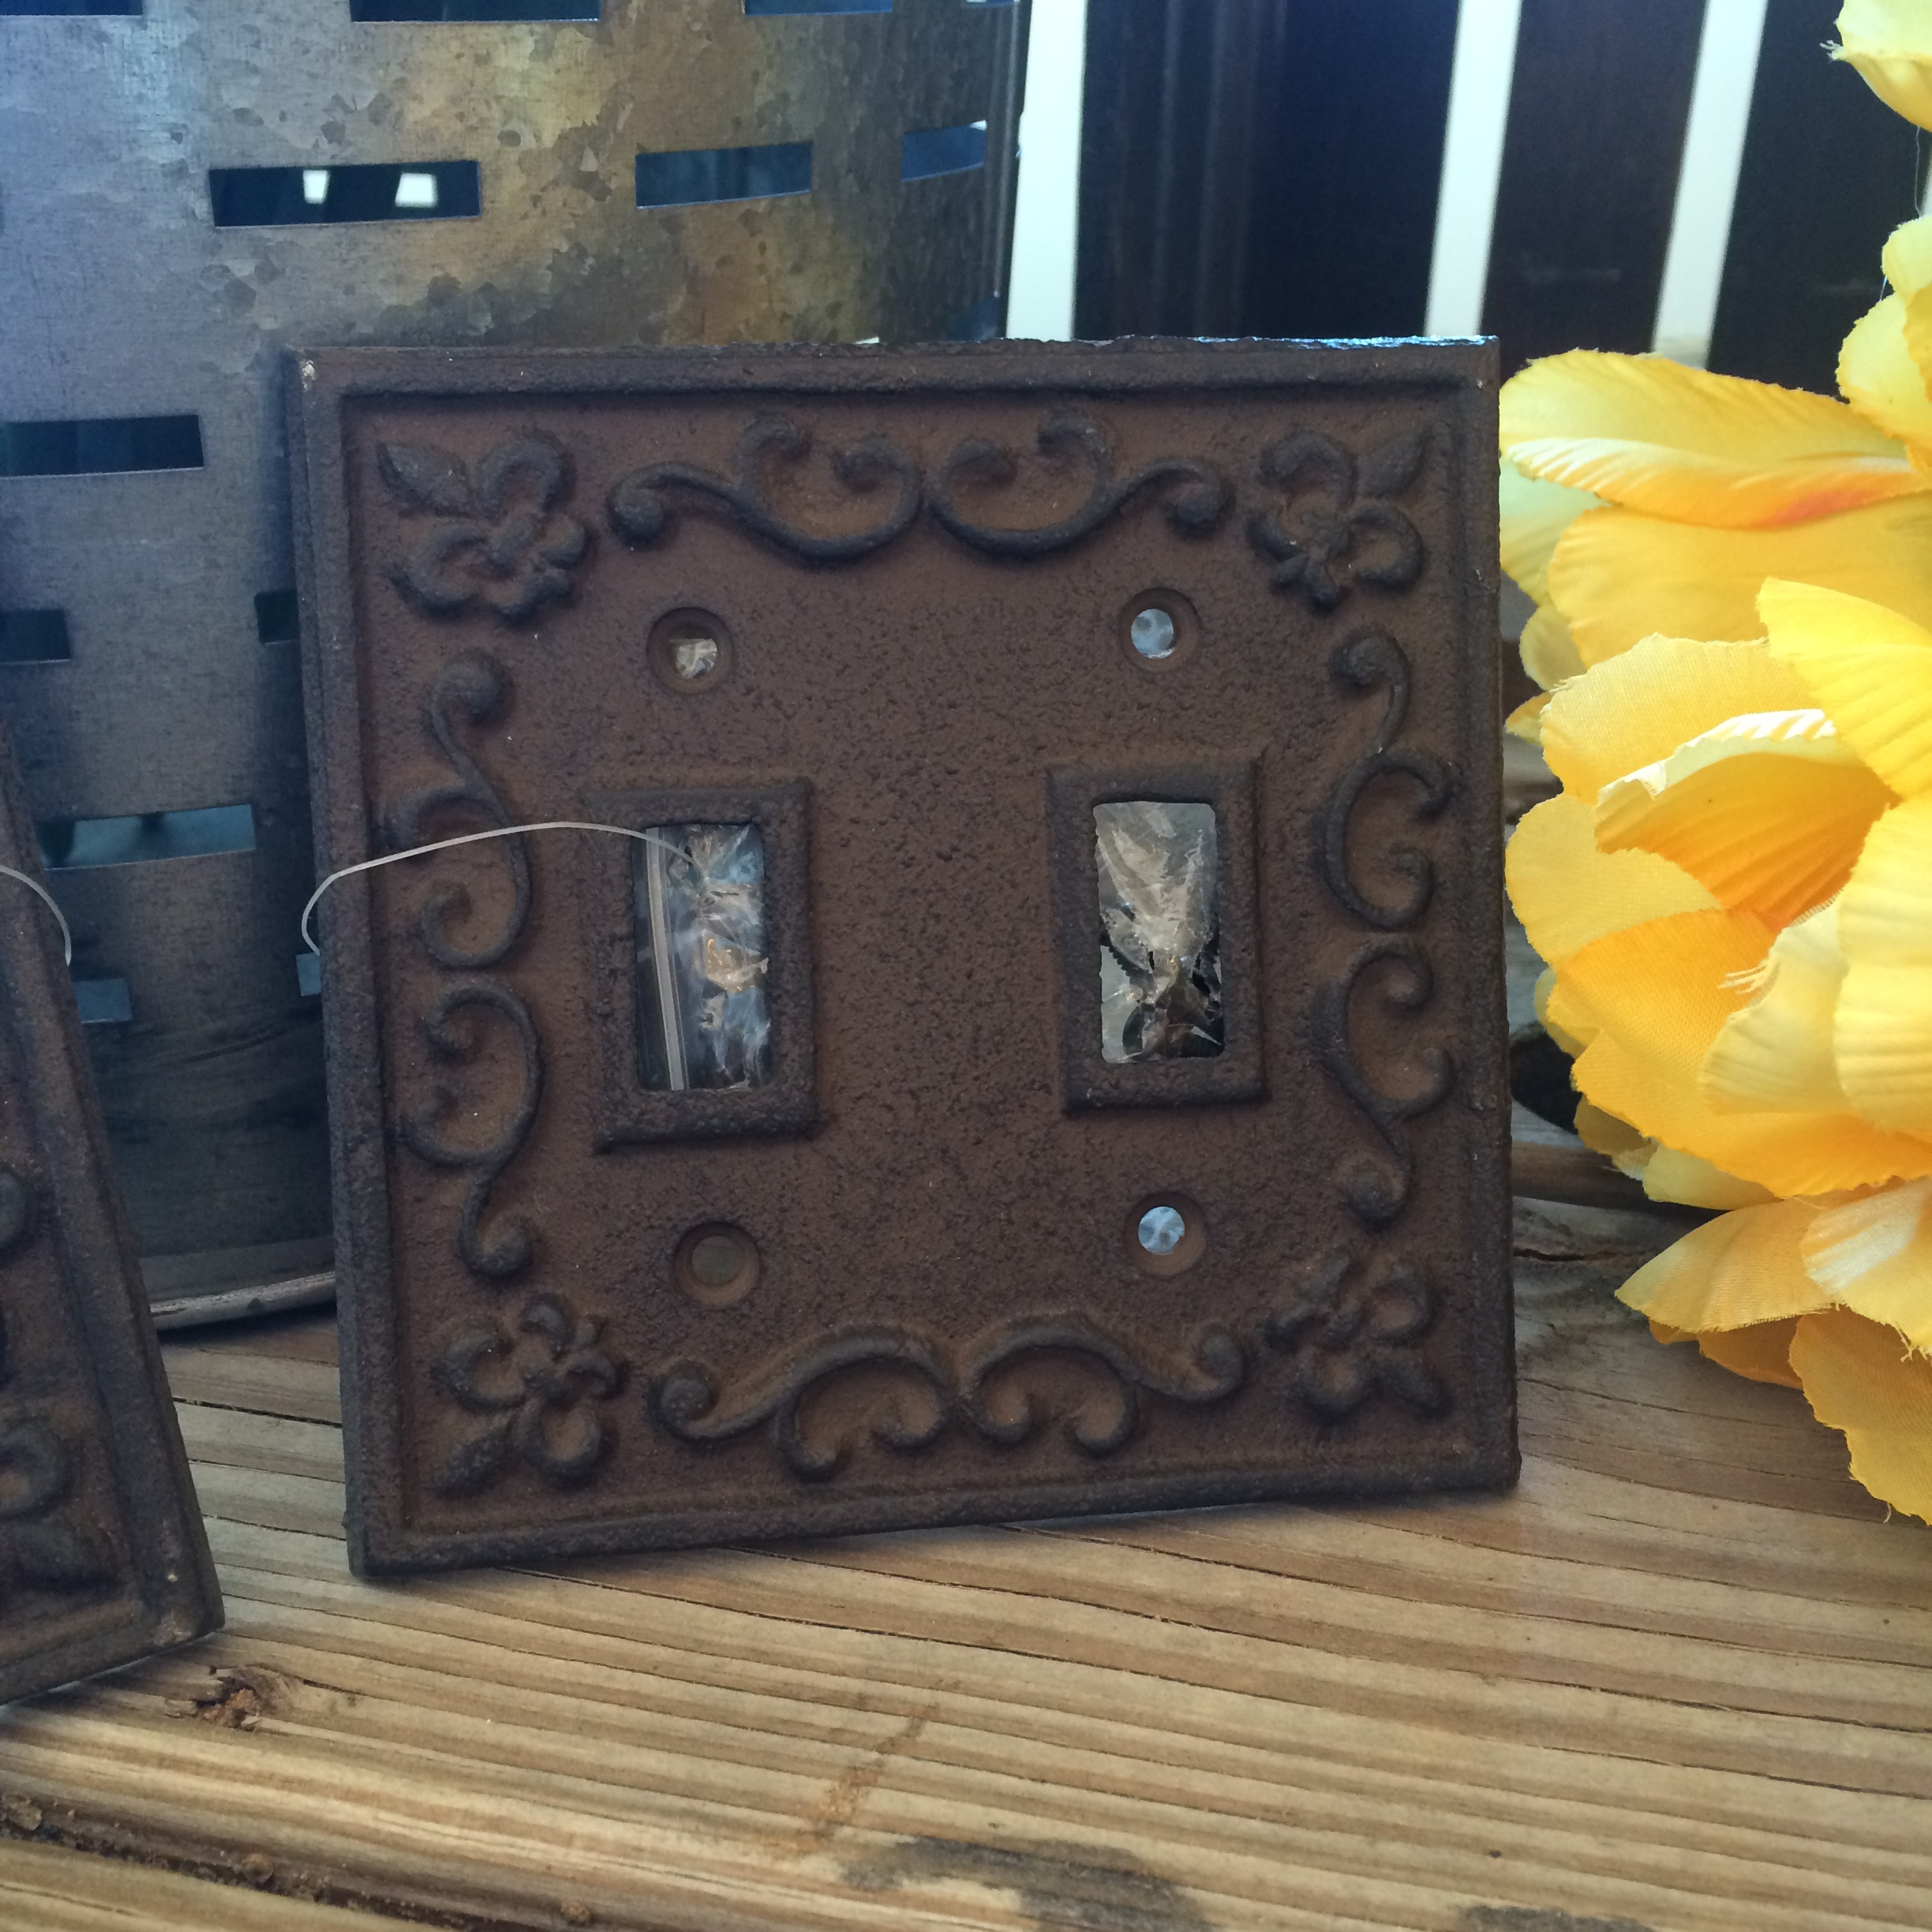 Decorative Switch Cover $4.99